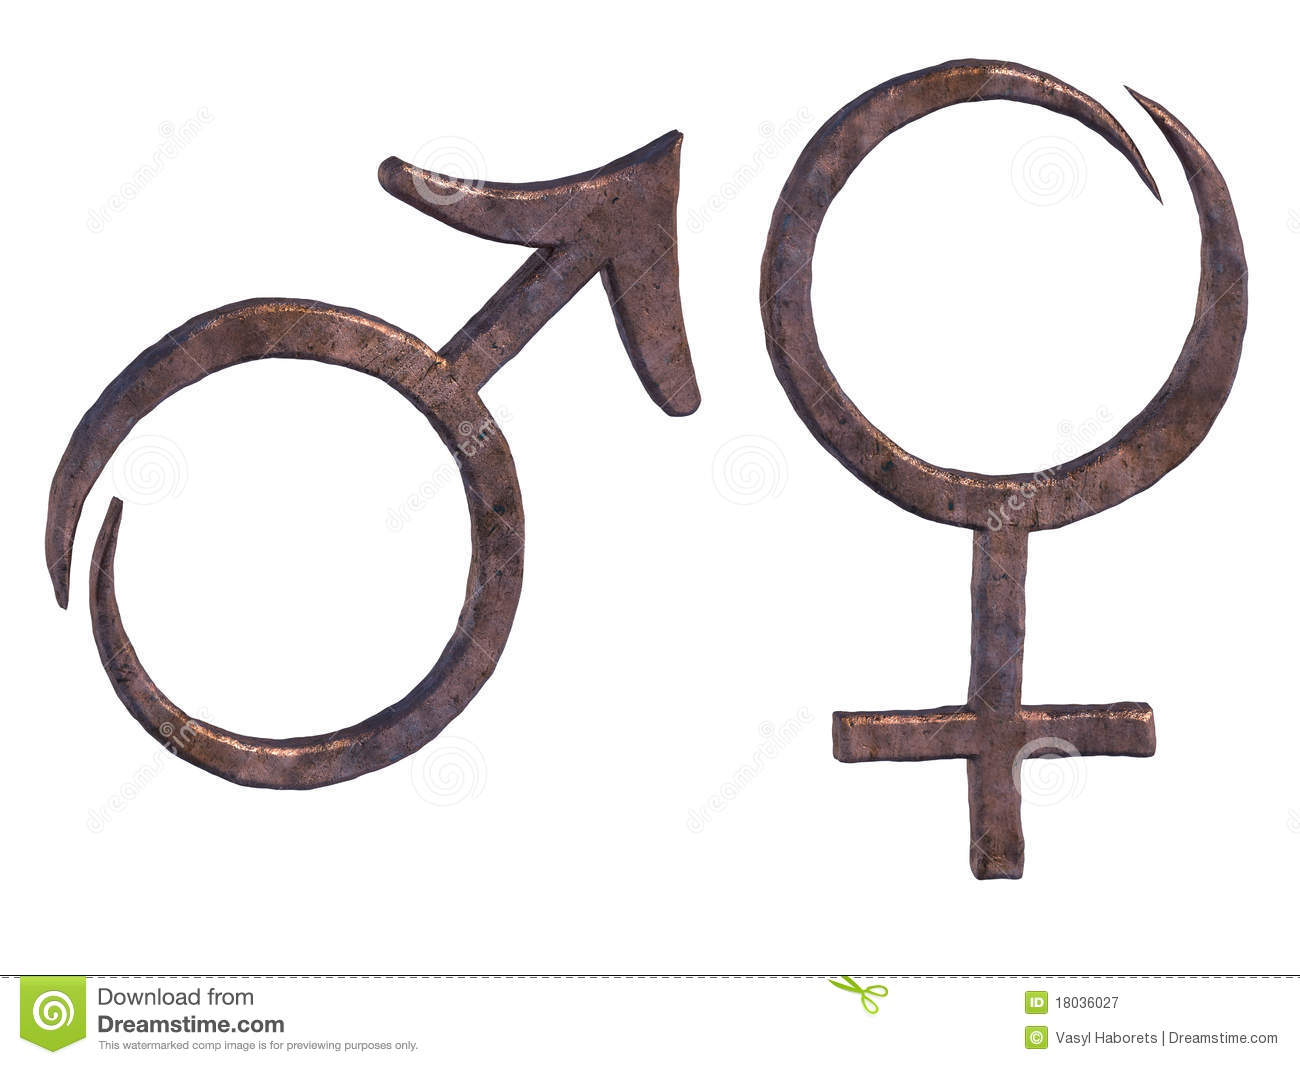 ... symbols of male and female, symbols of Mars and Venus. Gender signs